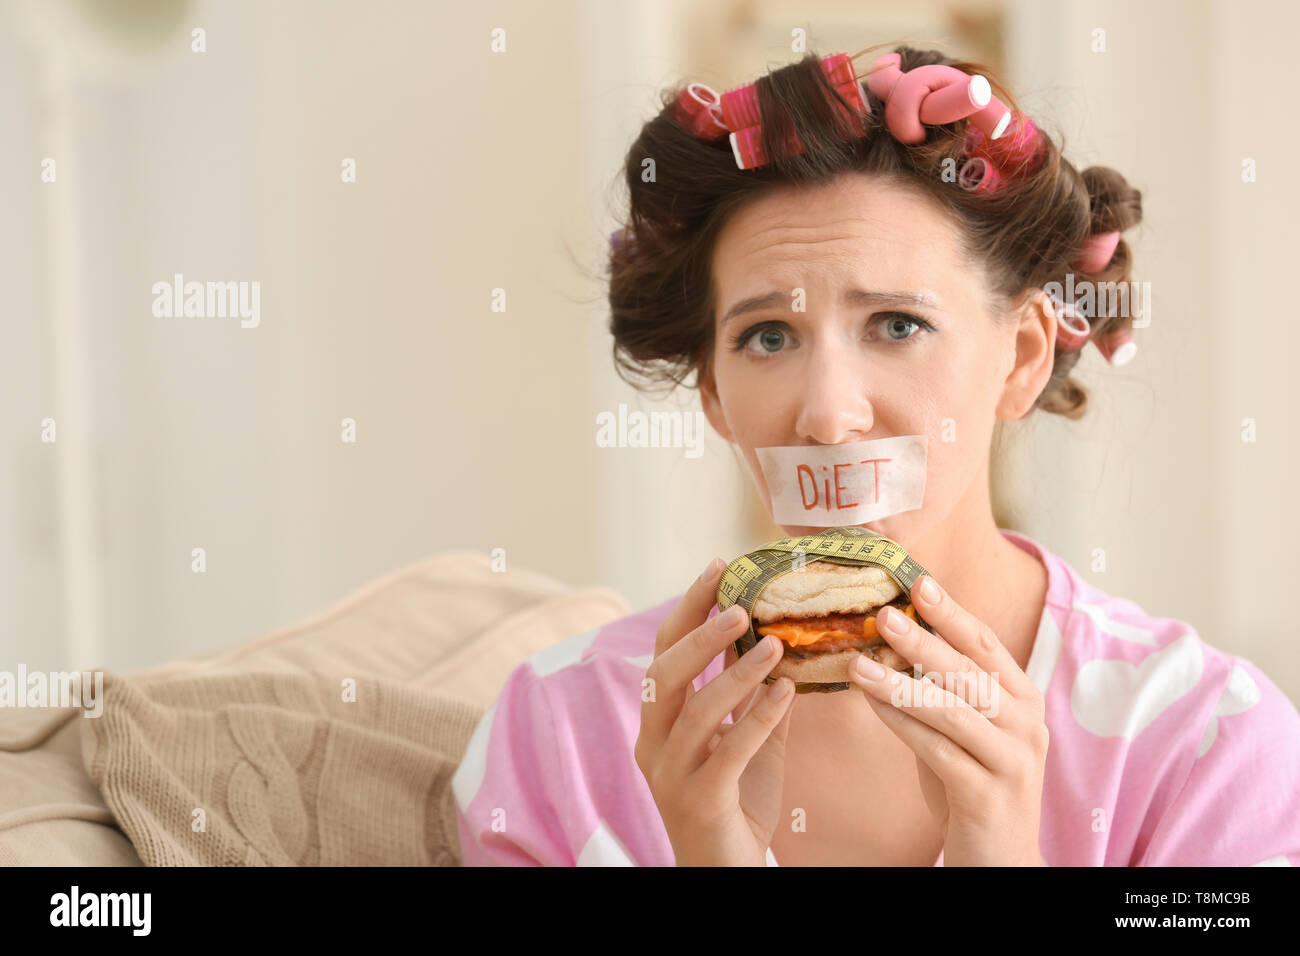 Stressful woman with taped mouth and tasty burger at home. Diet concept - Stock Image